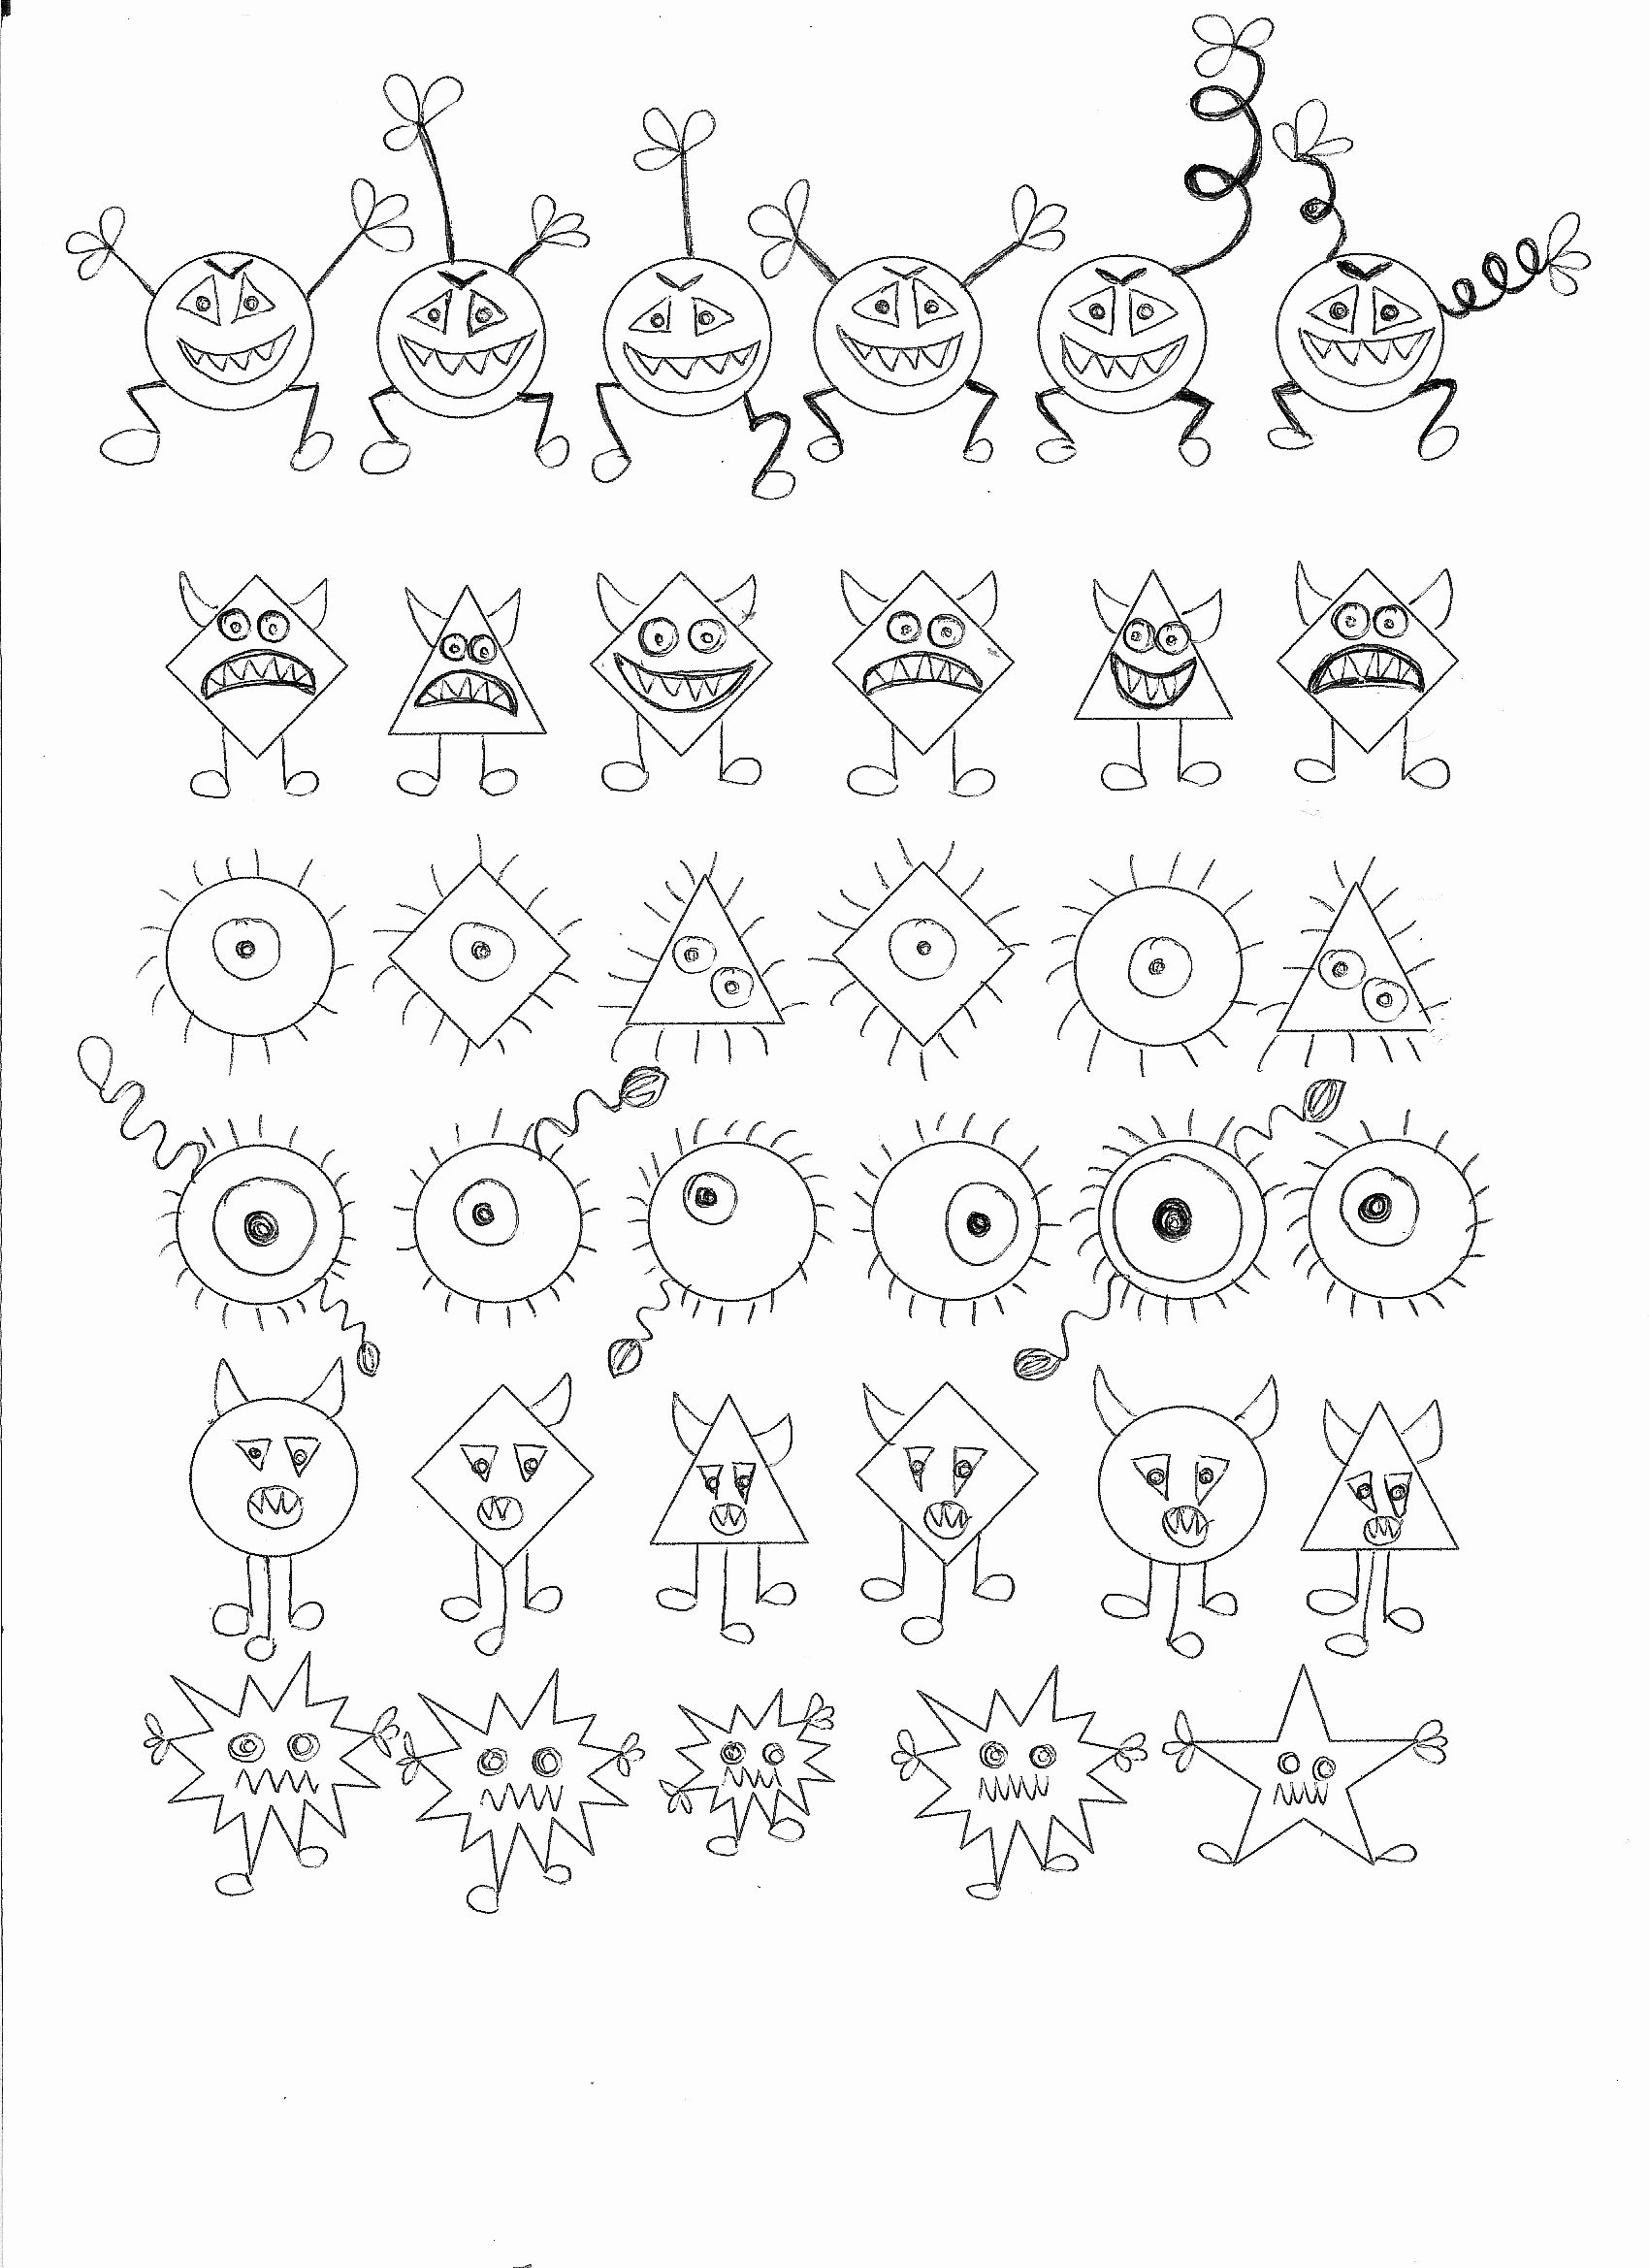 Germ Worksheets for Preschoolers Fresh Germ theme Math Activity Find the Germ that Doesn´t Belong